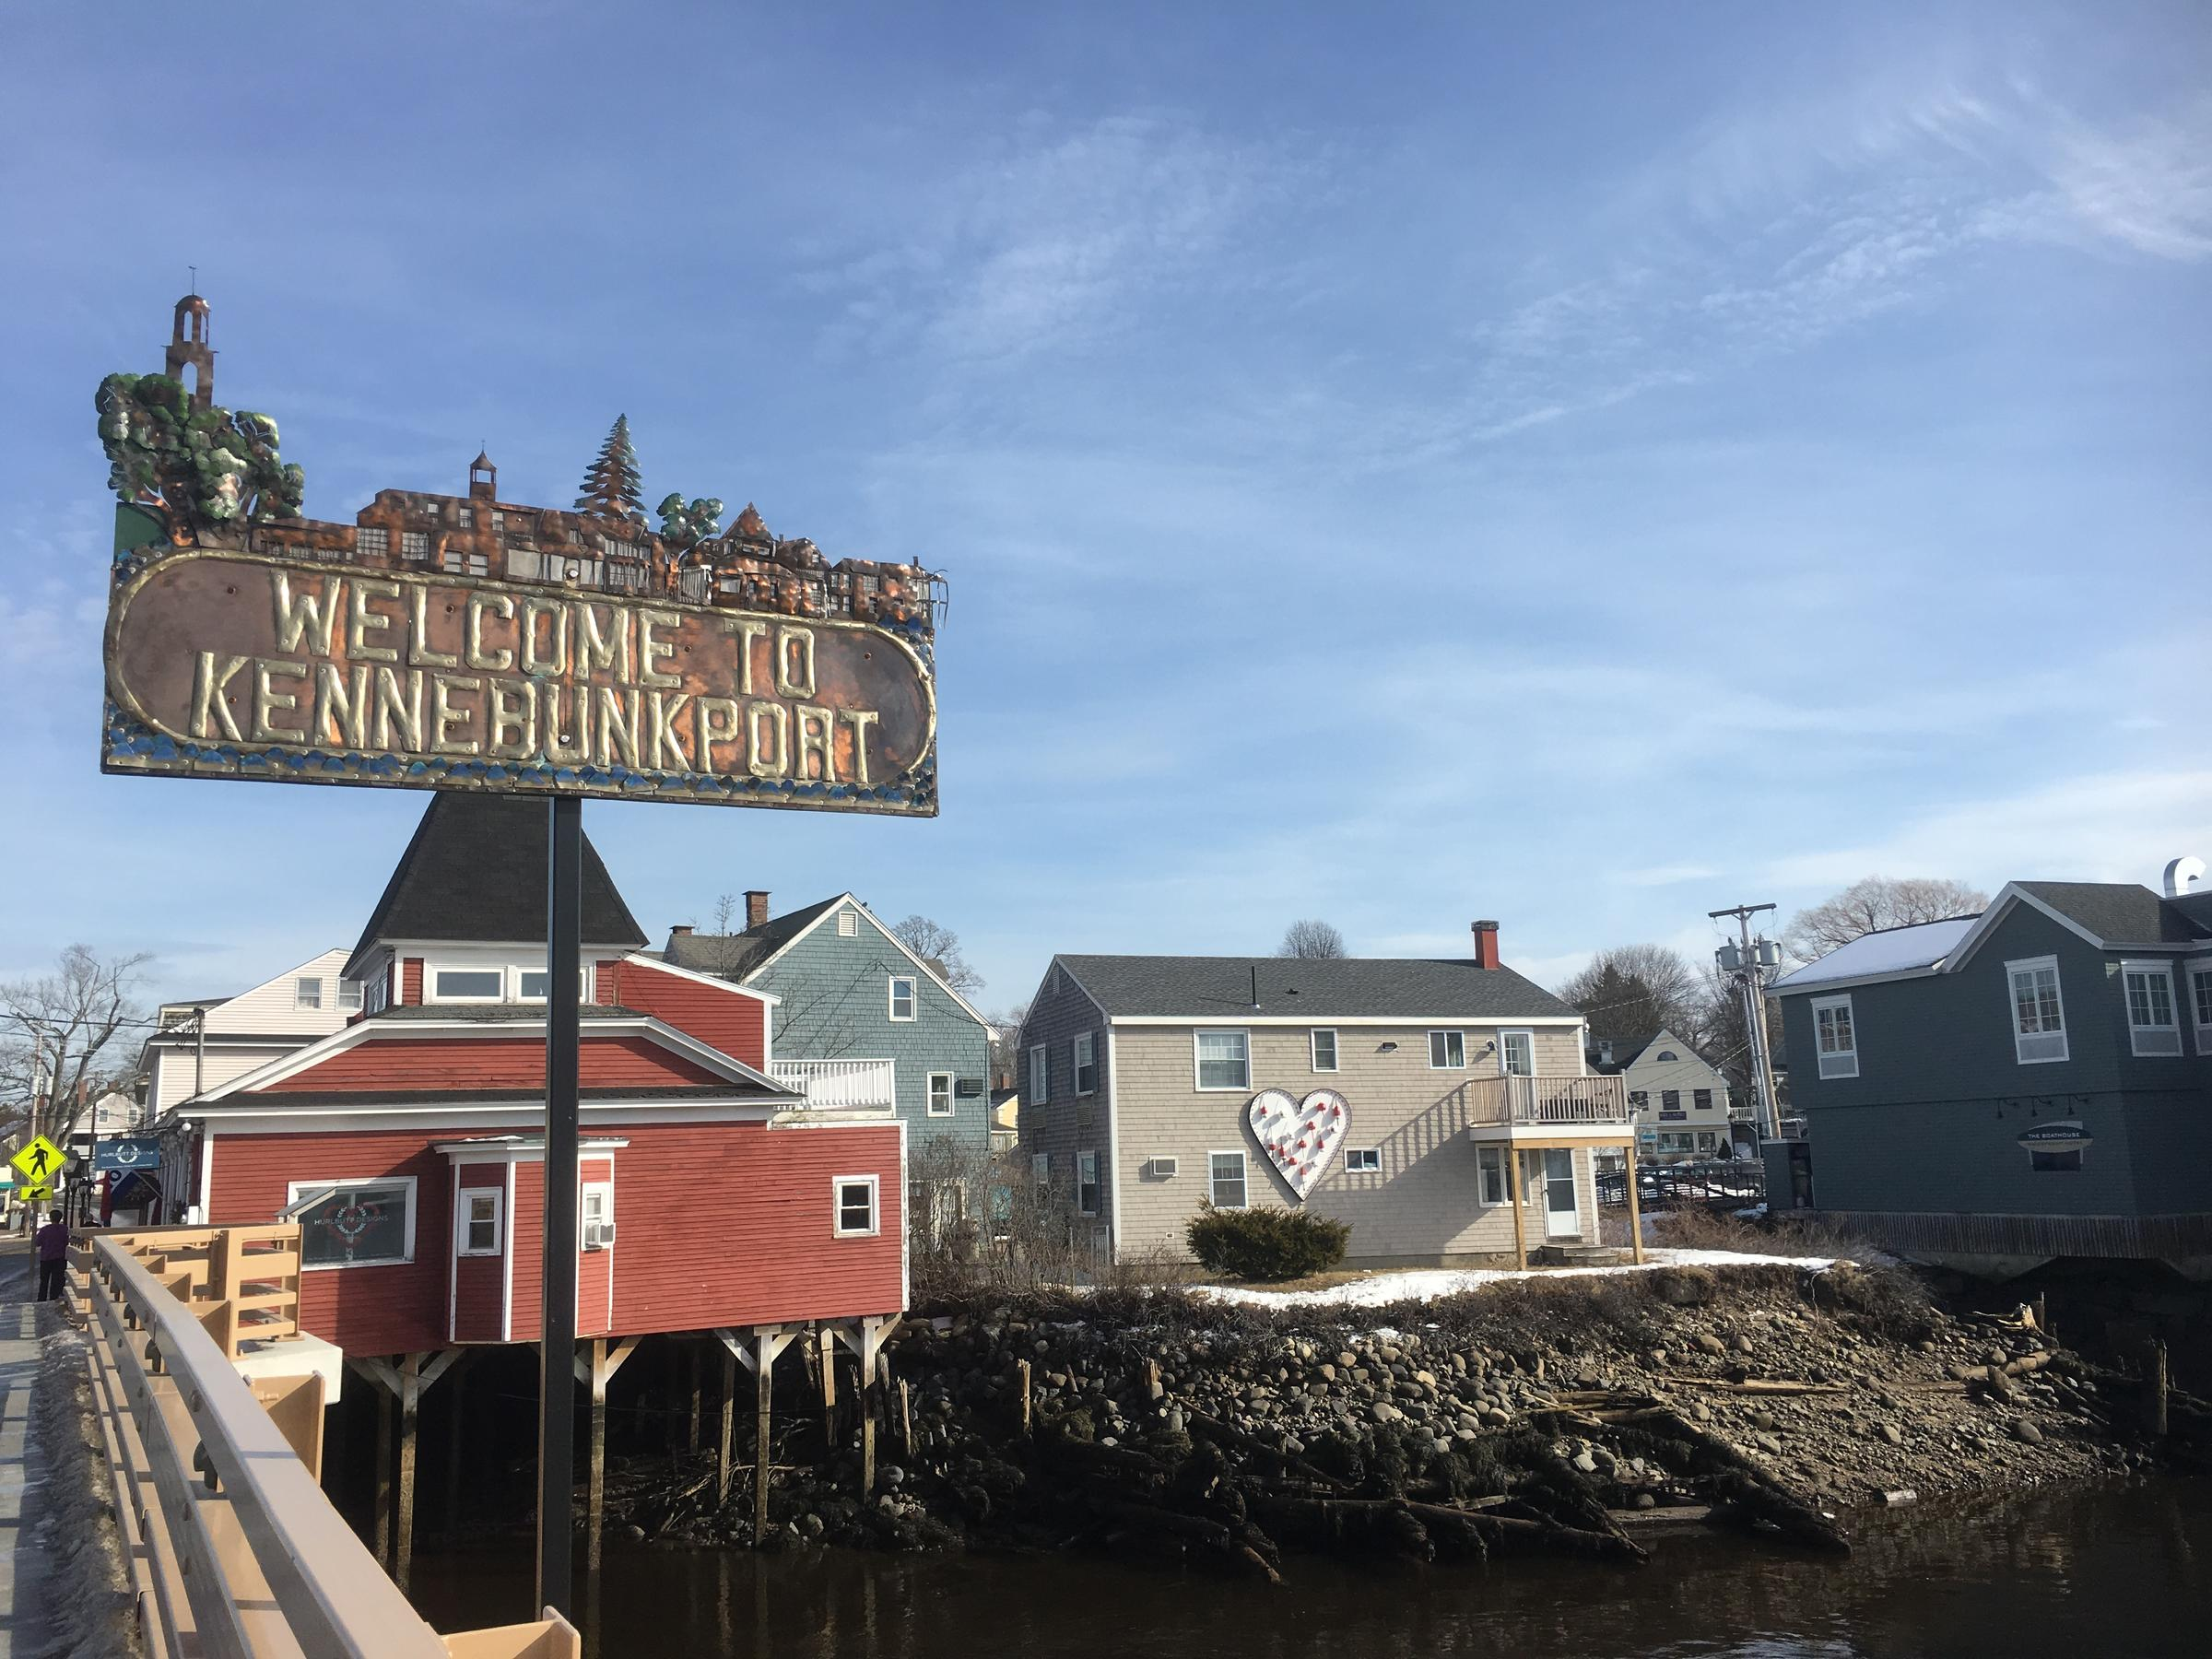 Welcome to Kennebunkport